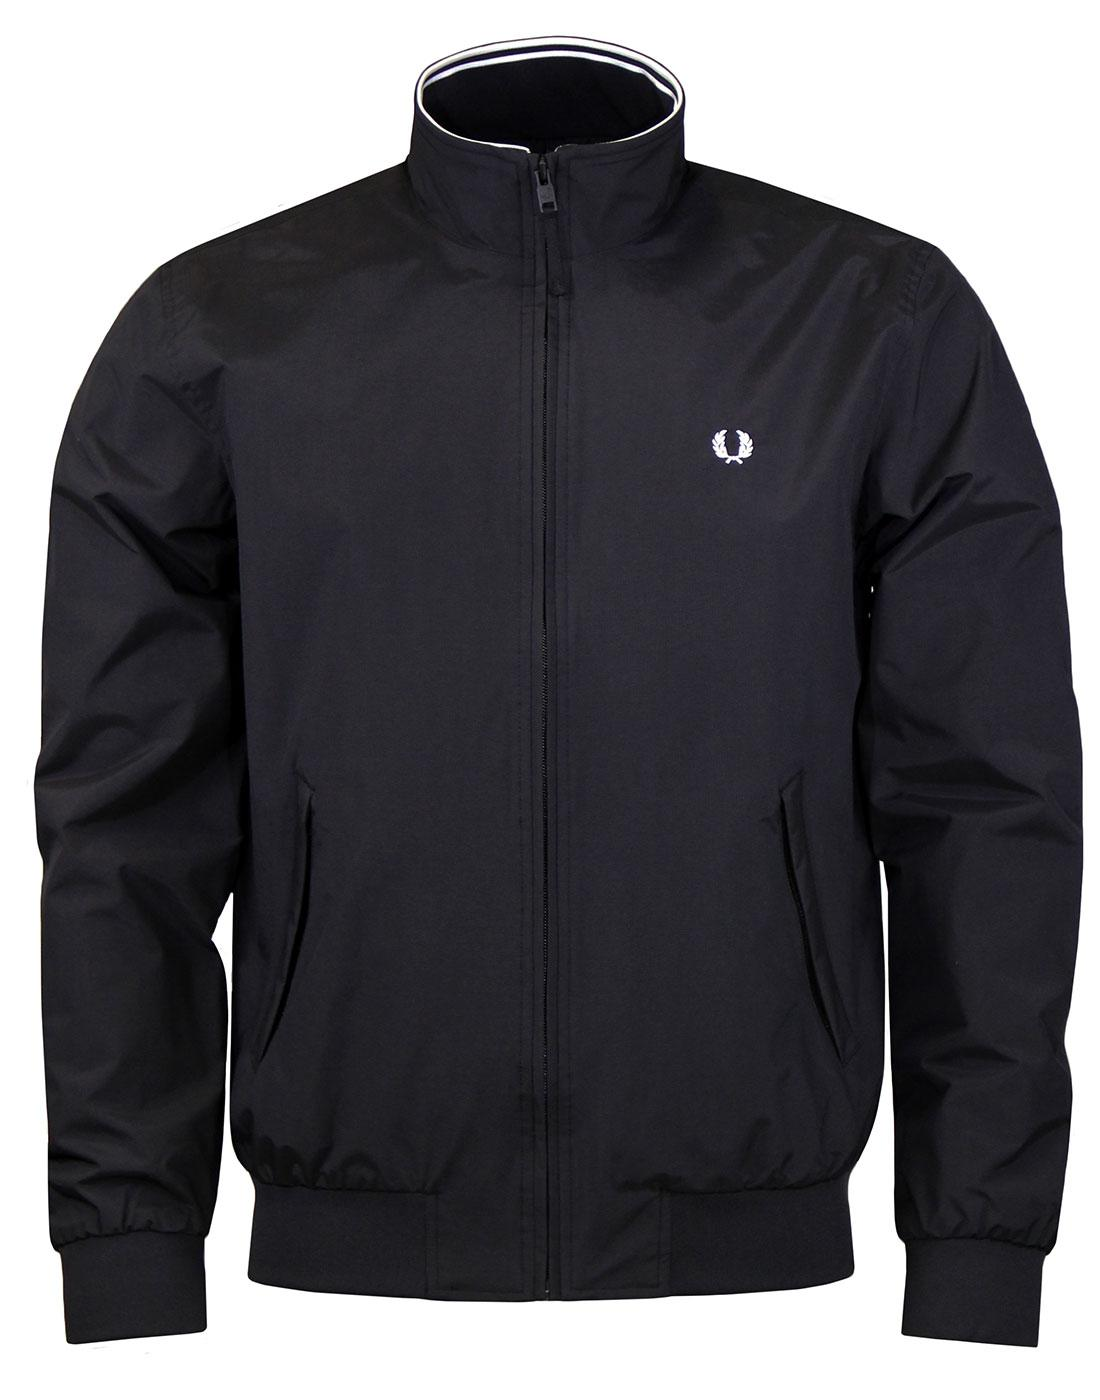 Brentham FRED PERRY Tipped Harrington Jacket BLACK